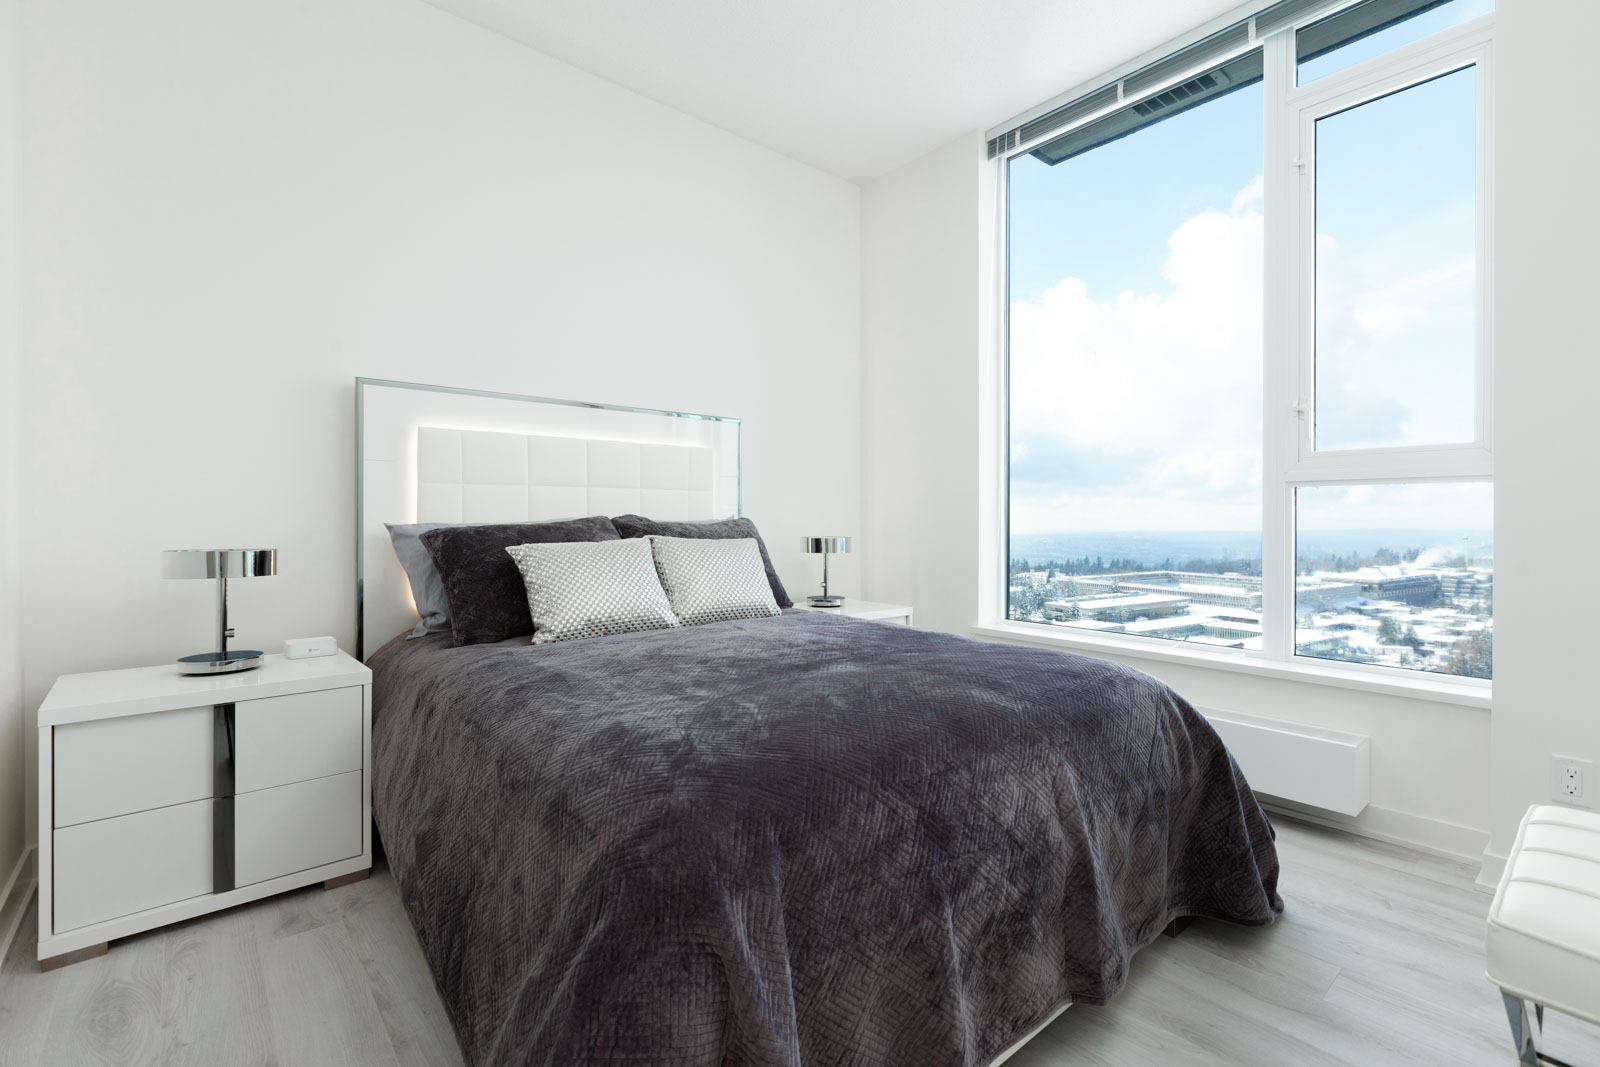 Bedroom inside luxury rental penthouse with views of Burnaby waterfront.